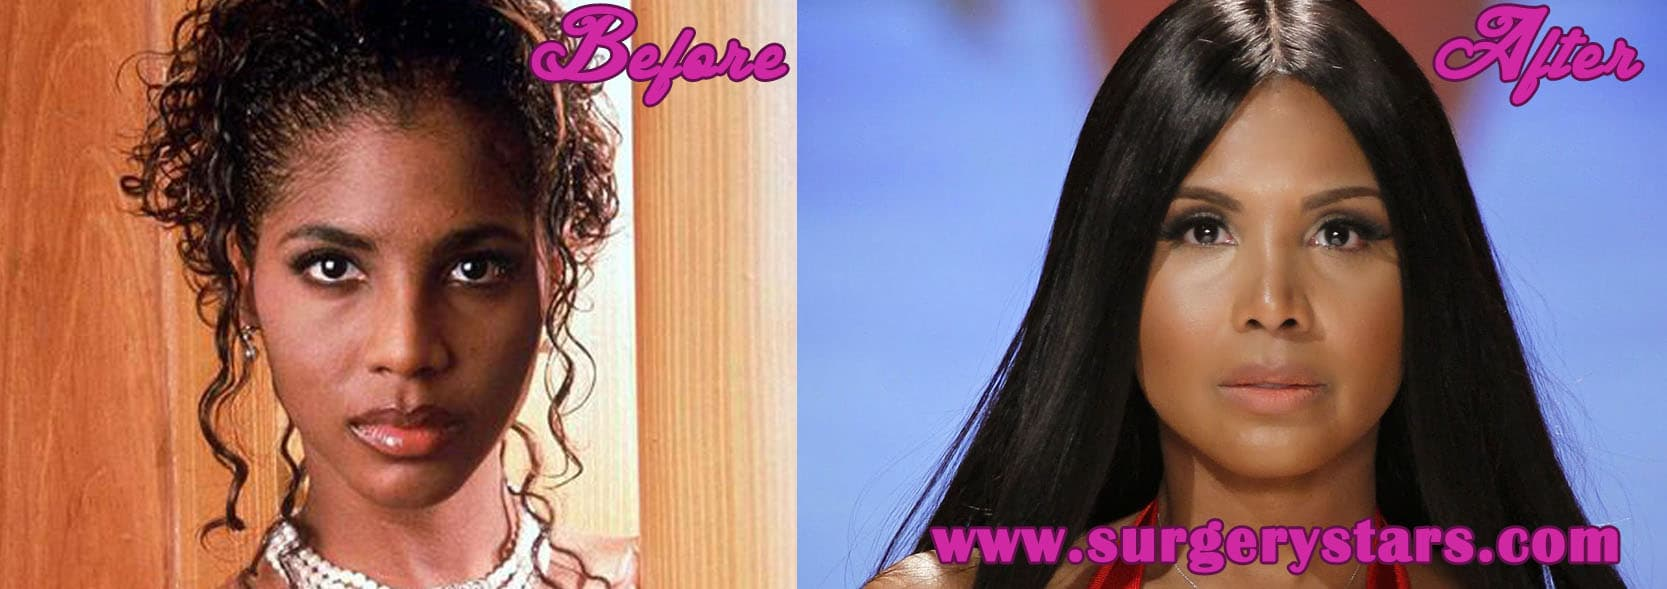 Toni Braxton Plastic Surgery Before And After 1